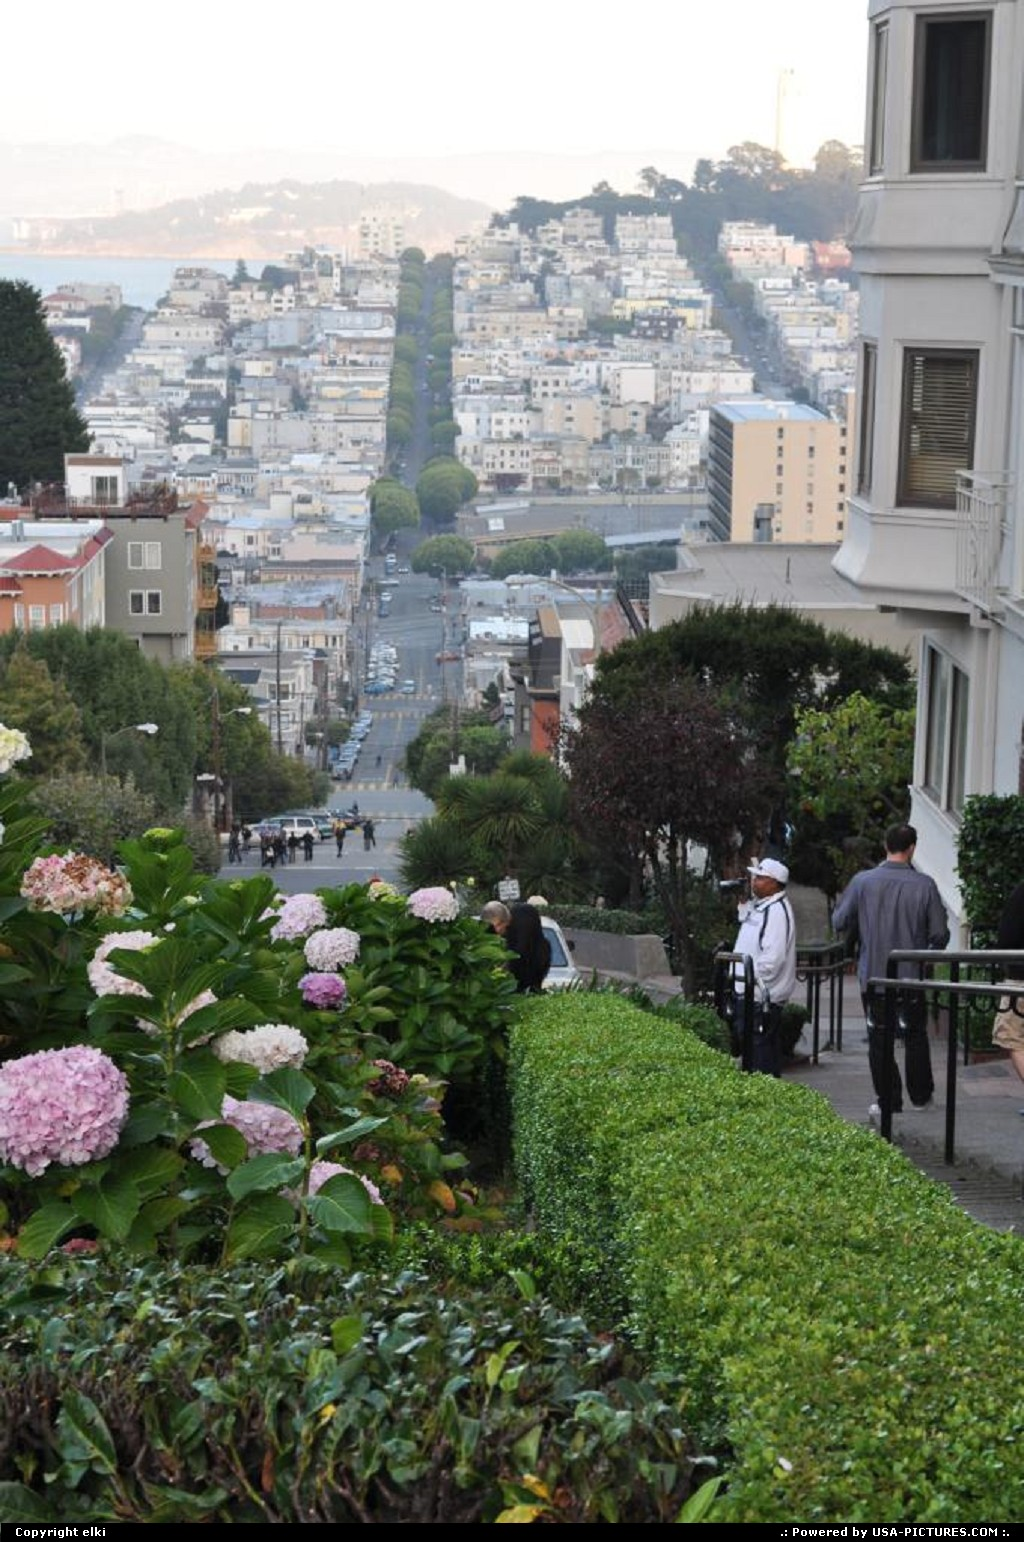 Picture by elki:San FranciscoCaliforniasan fransisco california lombard street